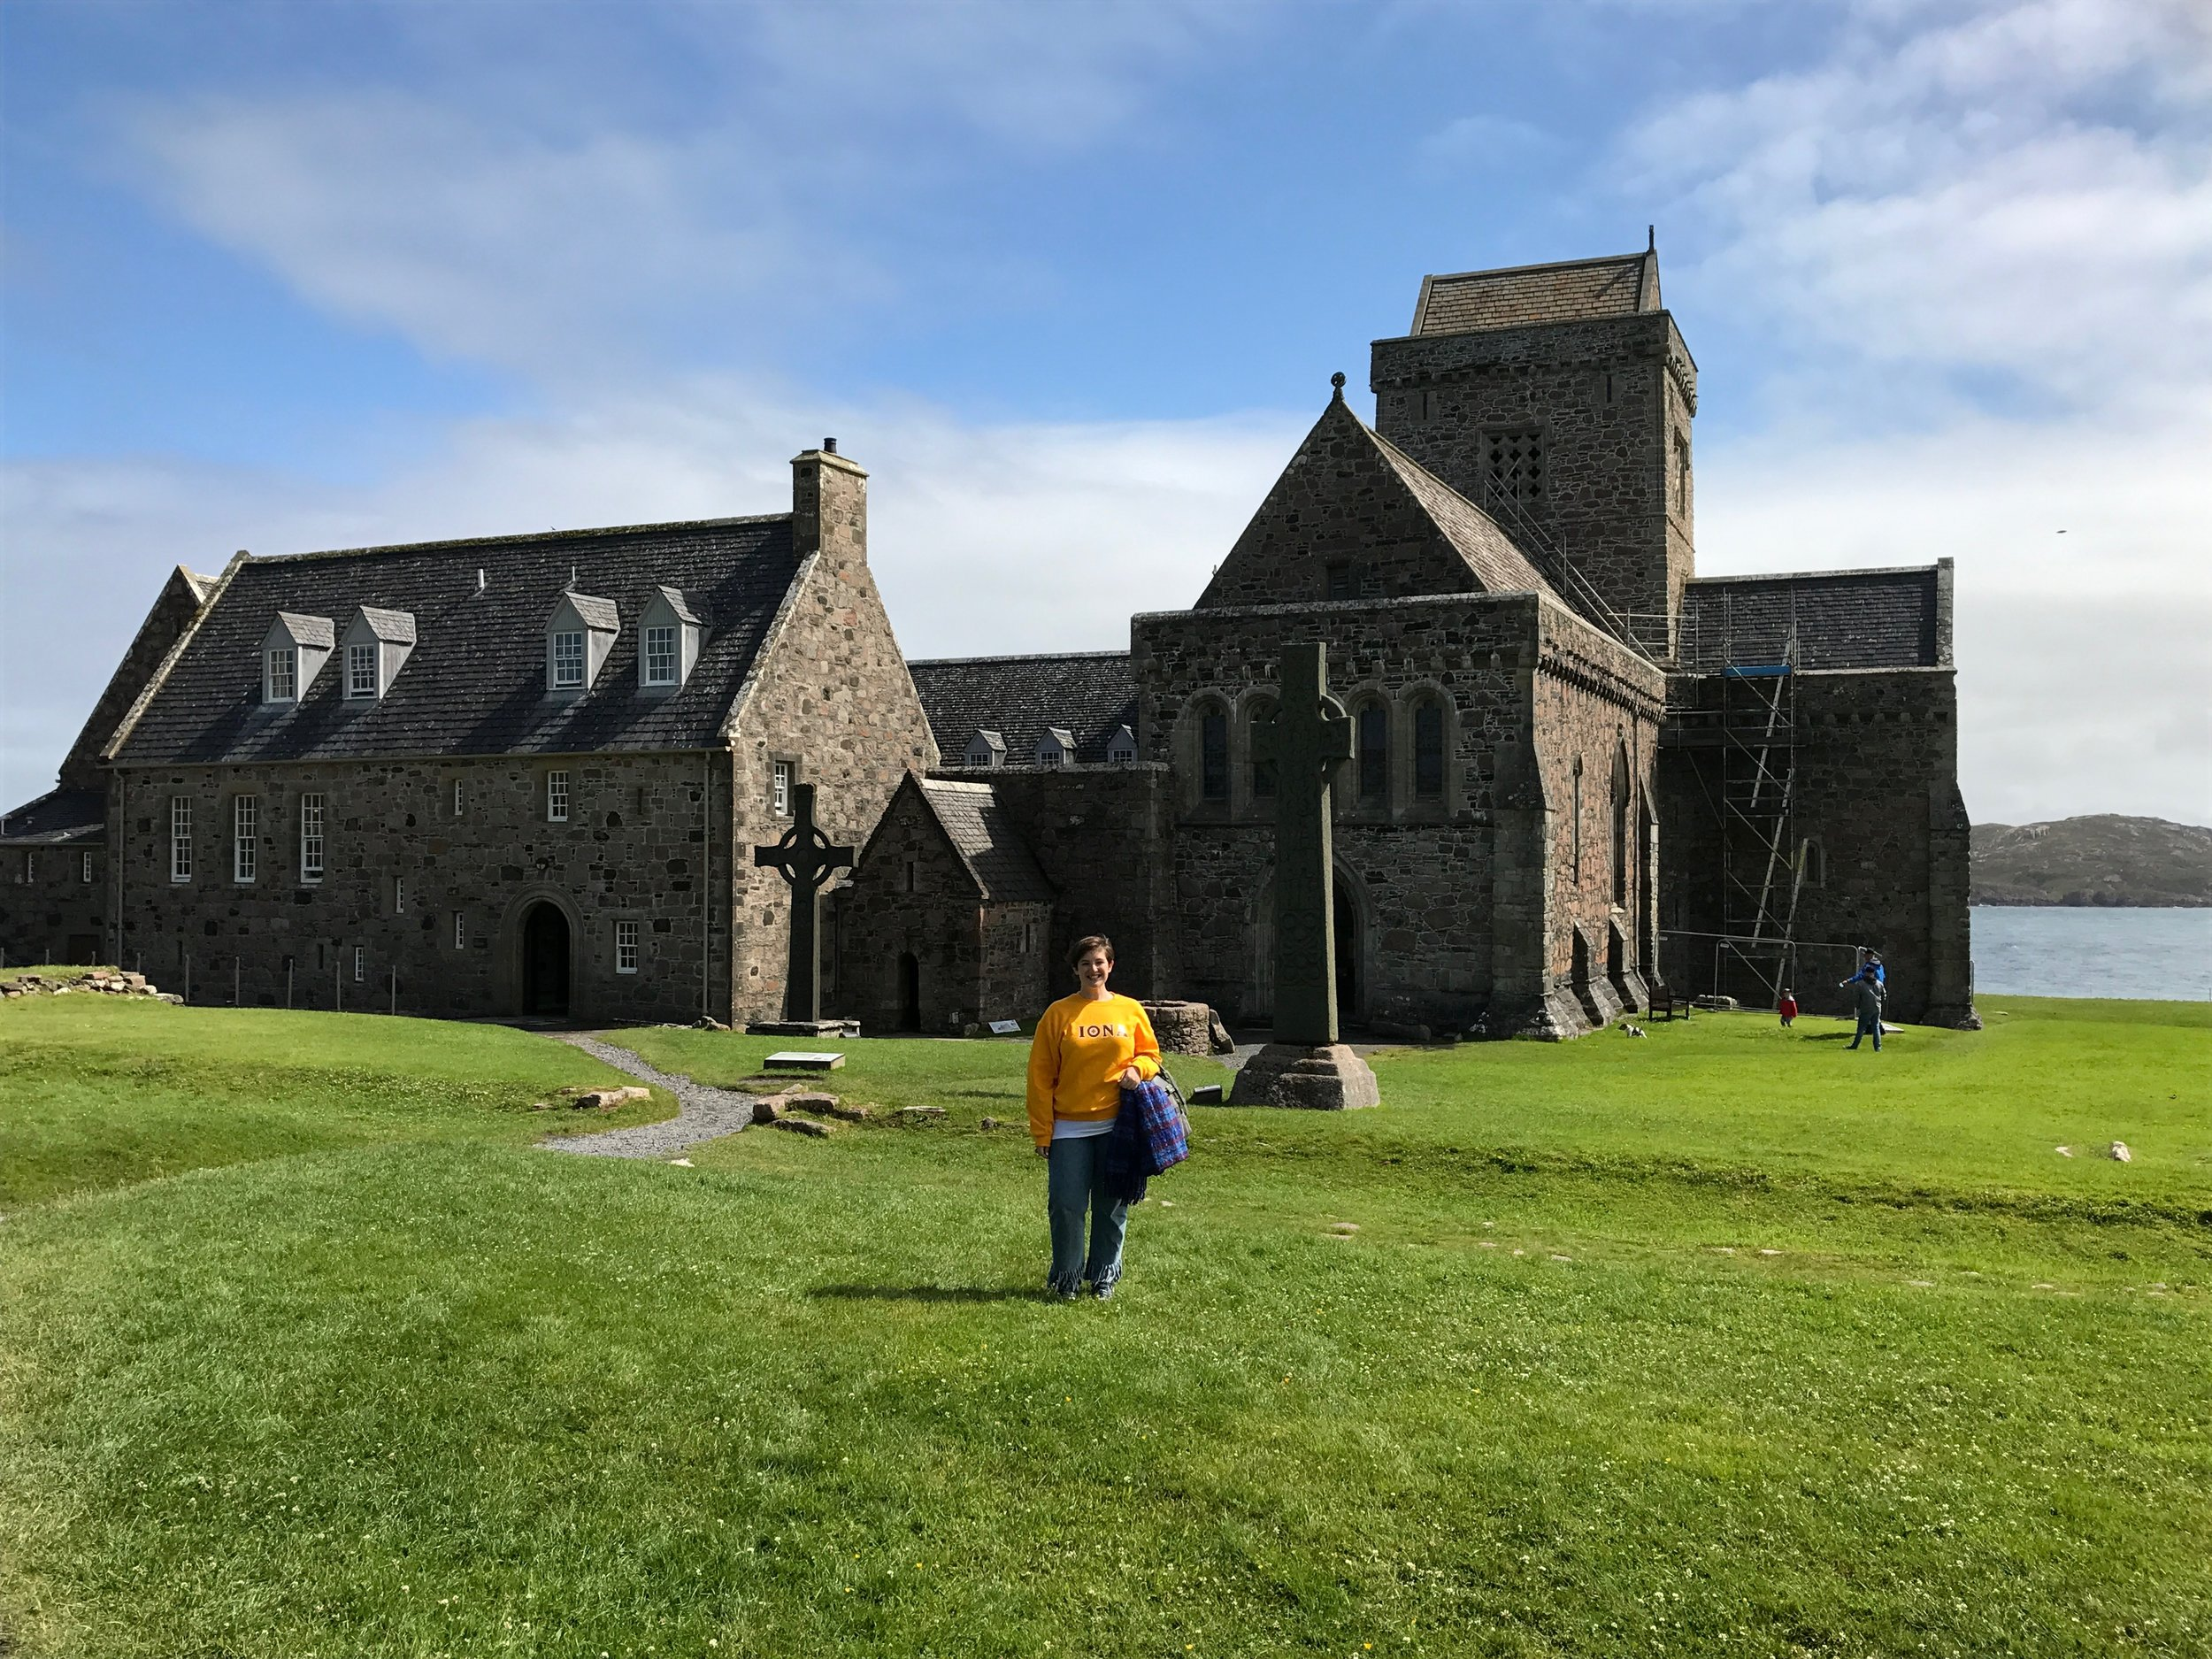 In the summer of 2017 I visited the Isle of Iona in Scotland, inspired in no small part by the role of literary property in the legend of its founding by St. Columba.